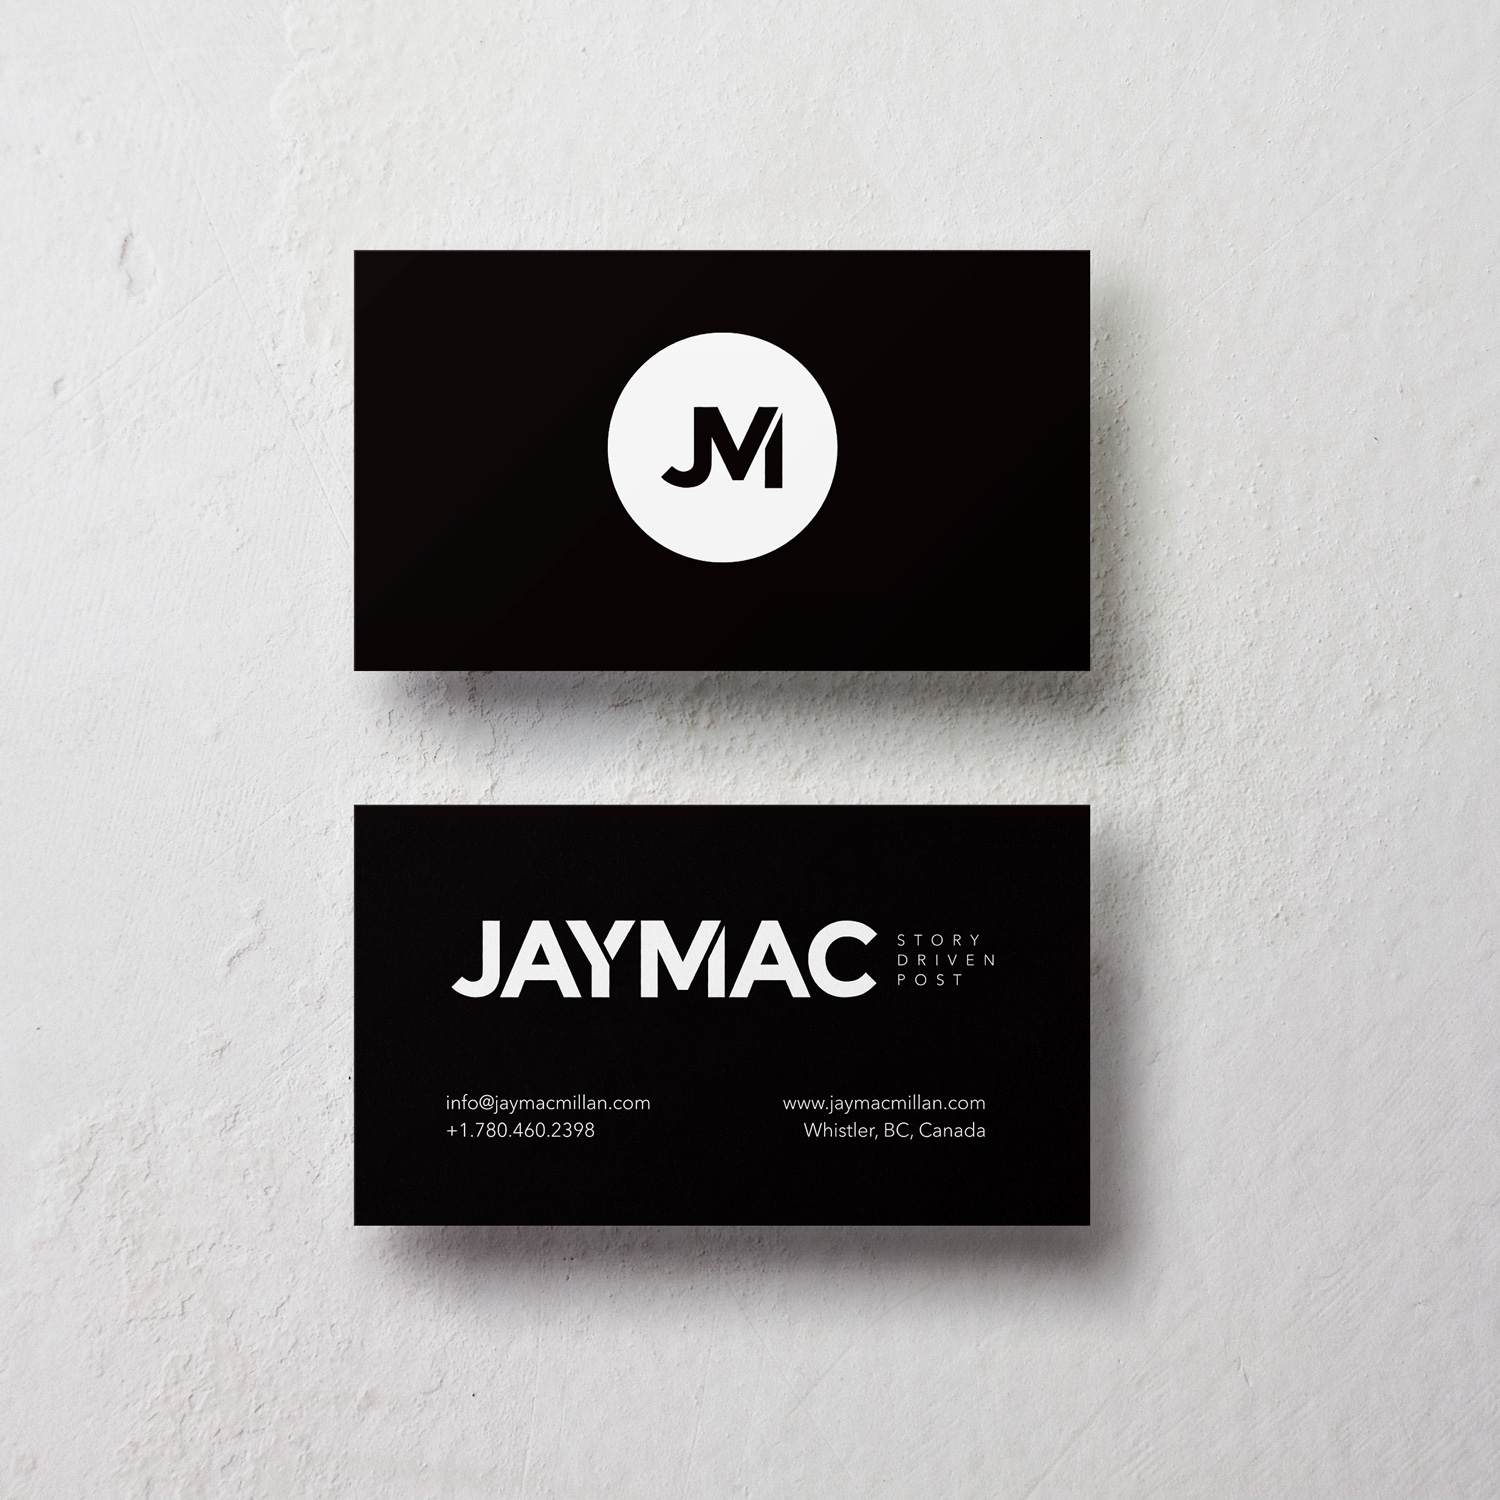 Jay-Macmillan-Business-Cards.jpg